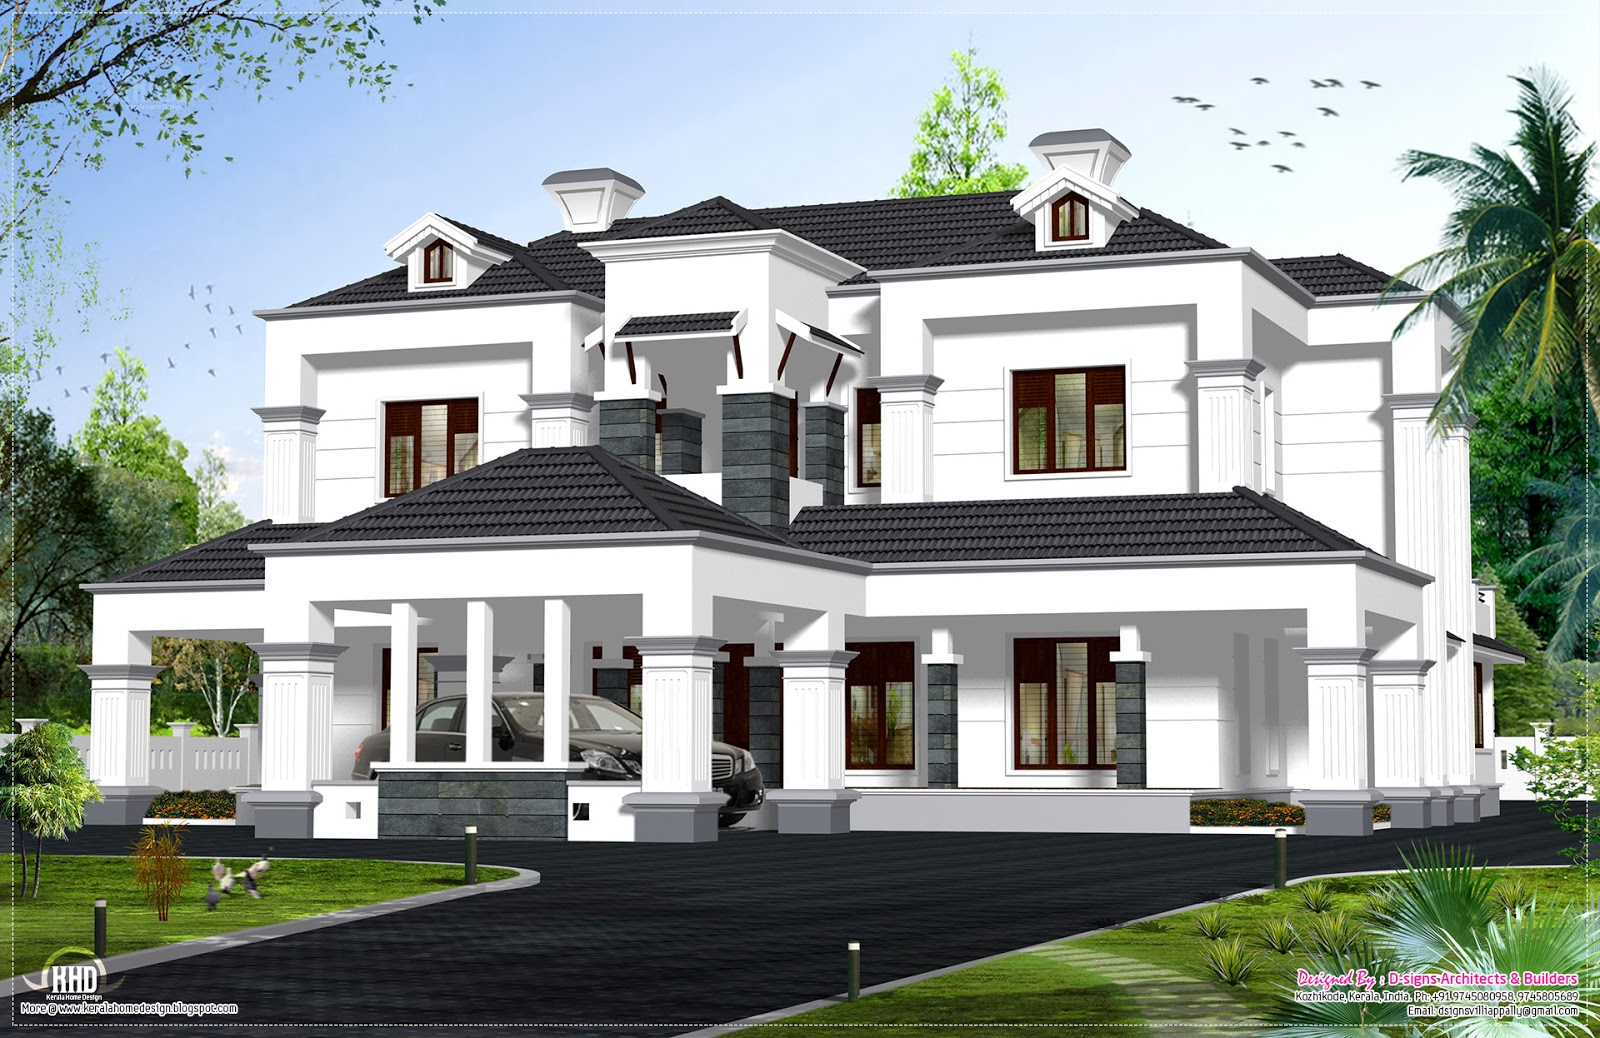 Victorian Model House Exterior Kerala Home Design And